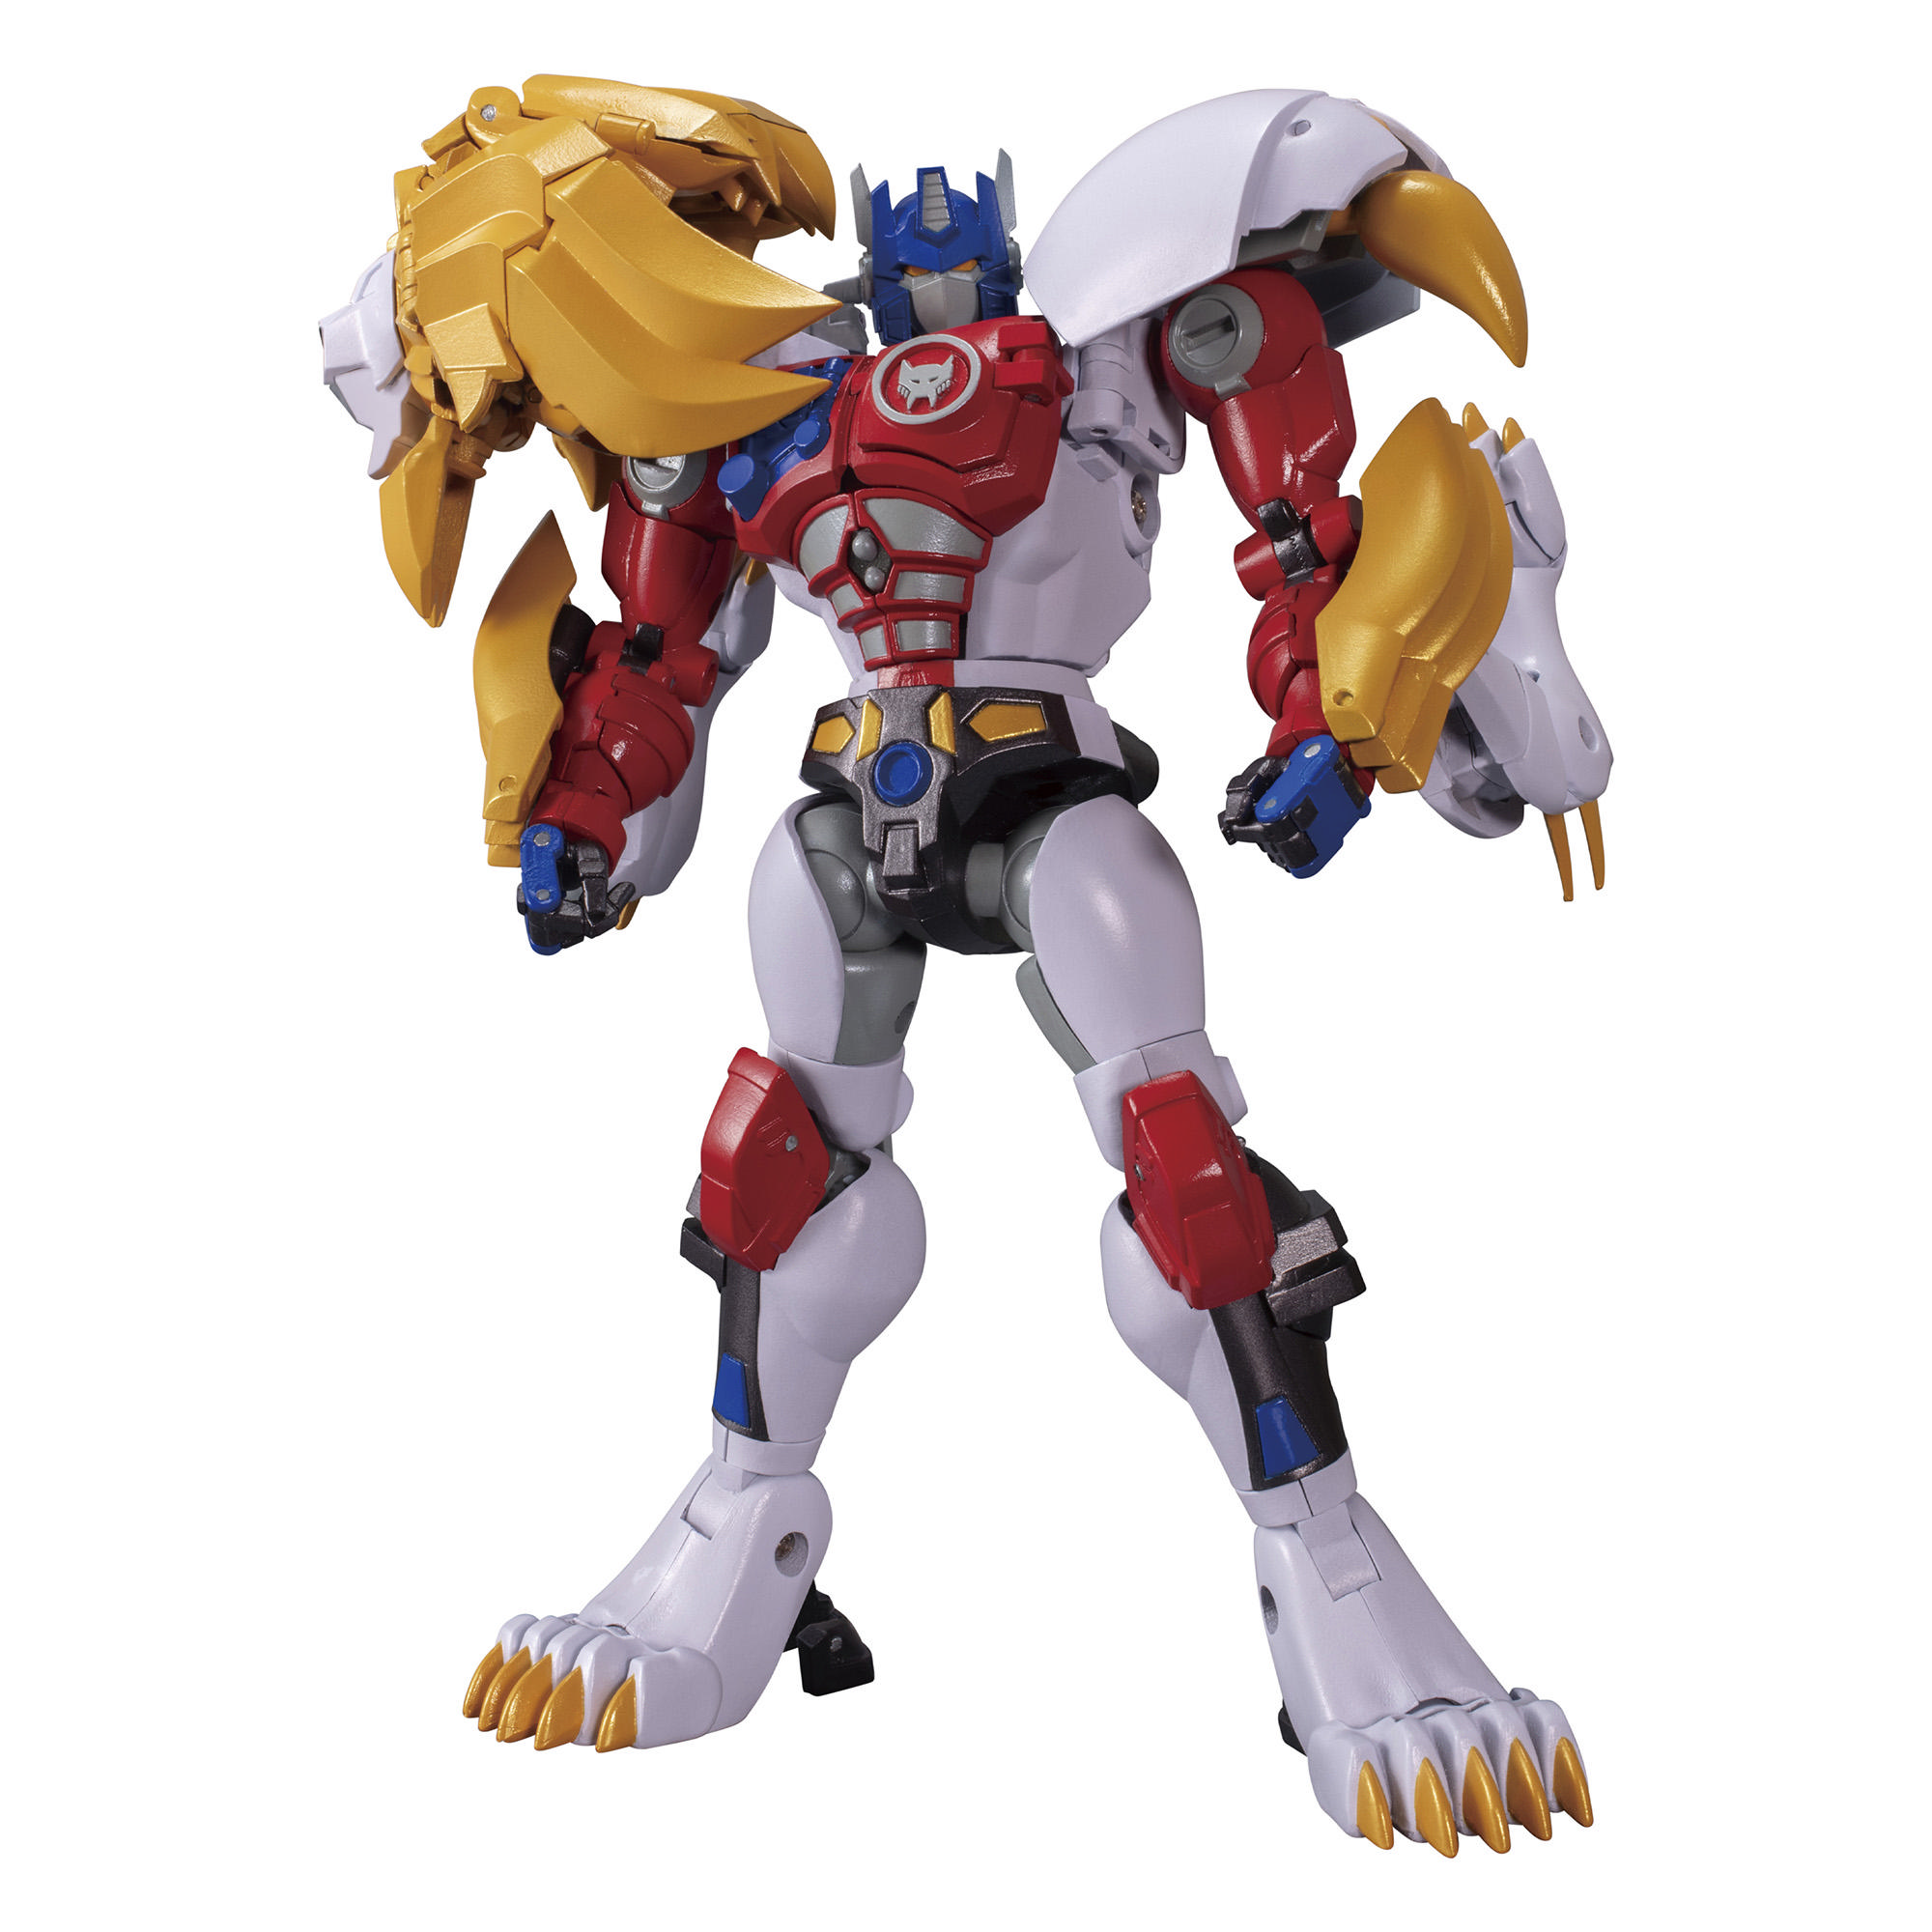 Transformers Masterpiece MP-48 Lio Convoy [Authentic Takara Tomy Product As Sold In Japan] Collector Figure